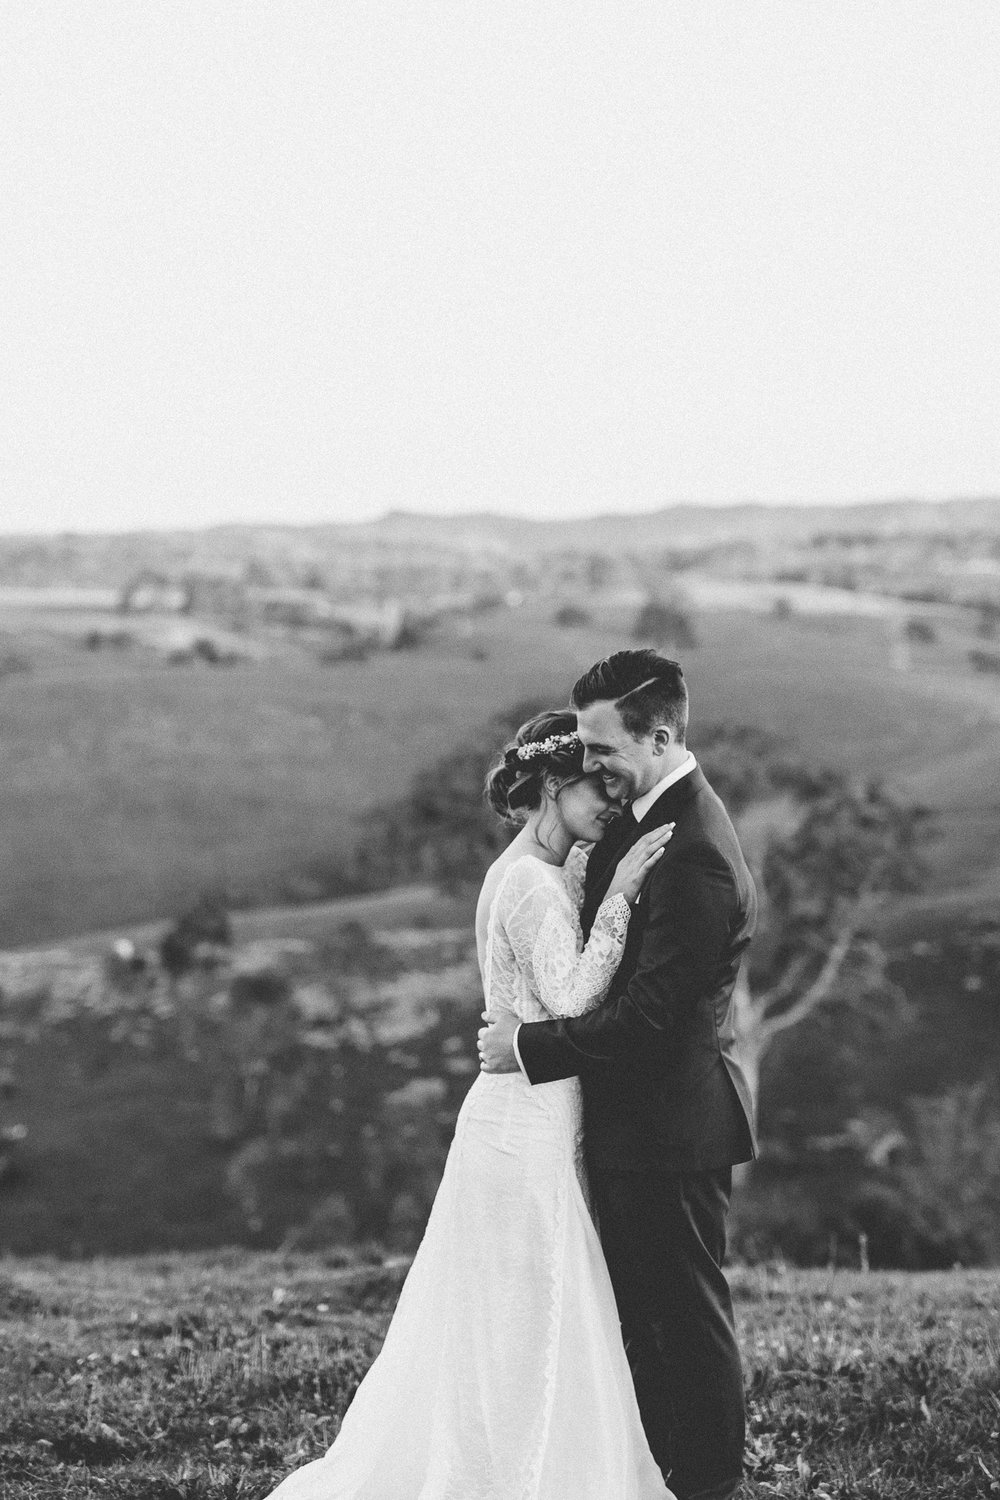 christopher morrison_adelaide hills wedding_ andy + teegan_84_1044.jpg